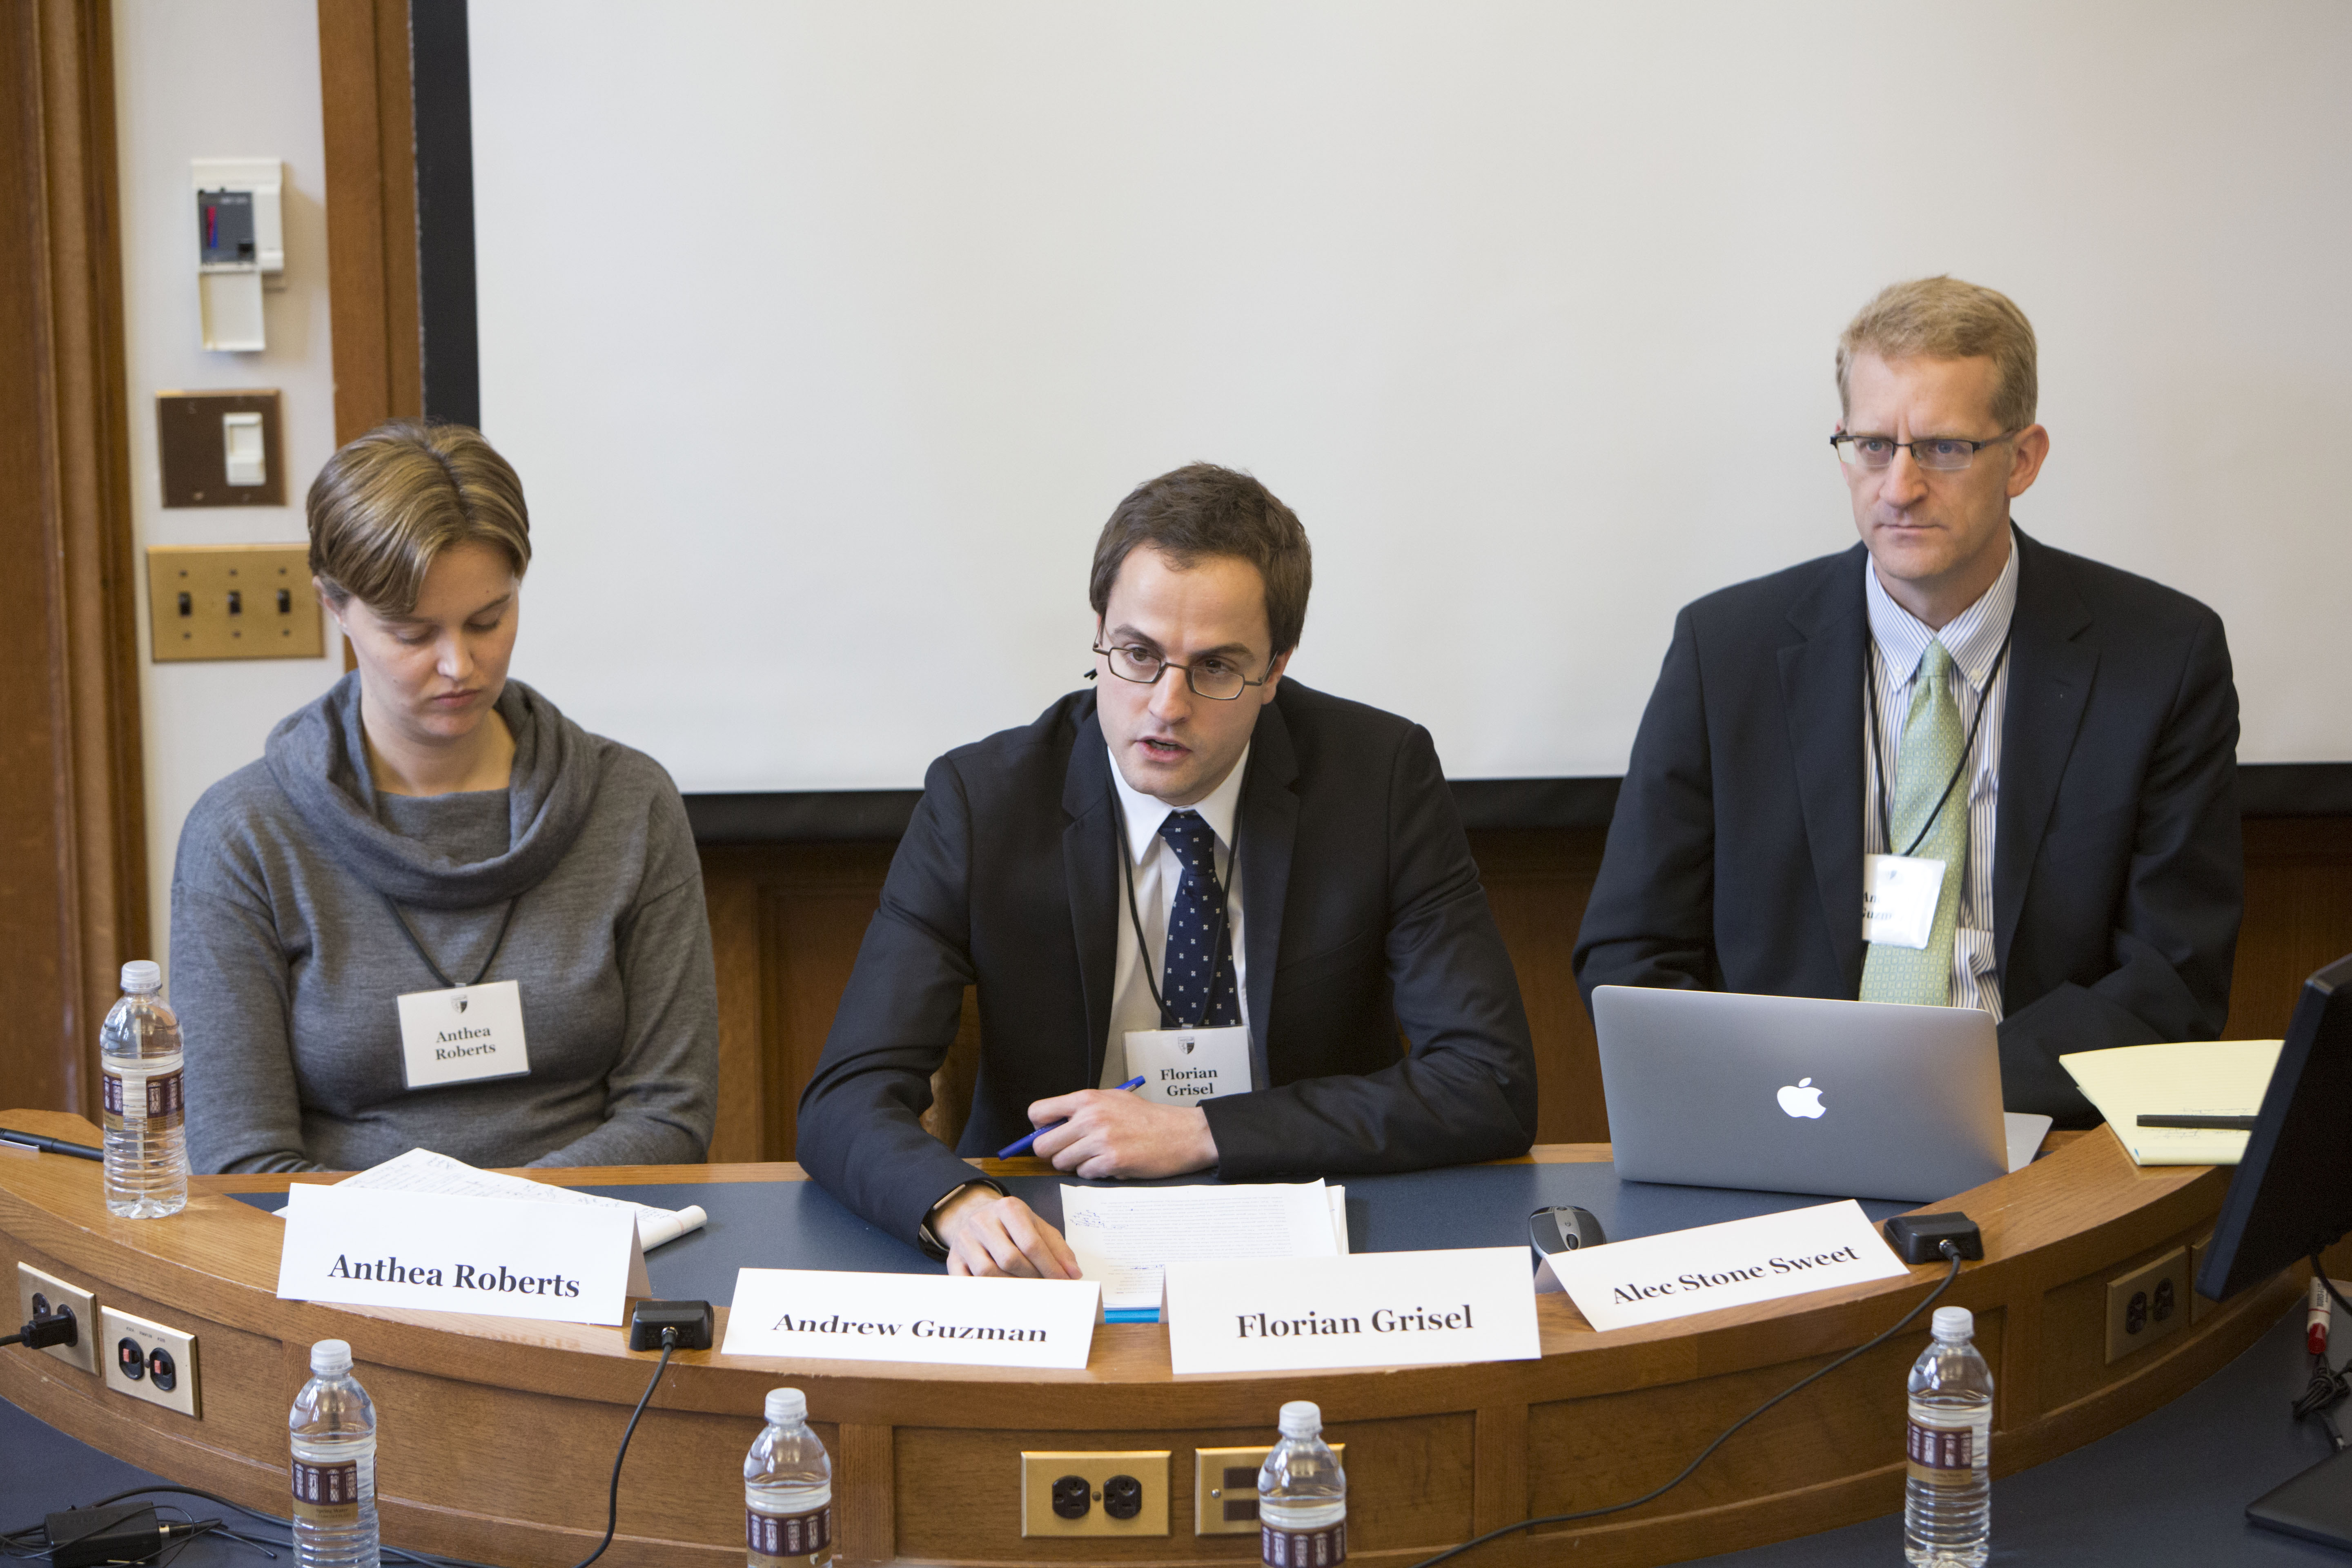 LSE Prof. Anthea Roberts, Florian Grisel LLM '10, and Berkeley Law Prof. Andrew T. Guzman